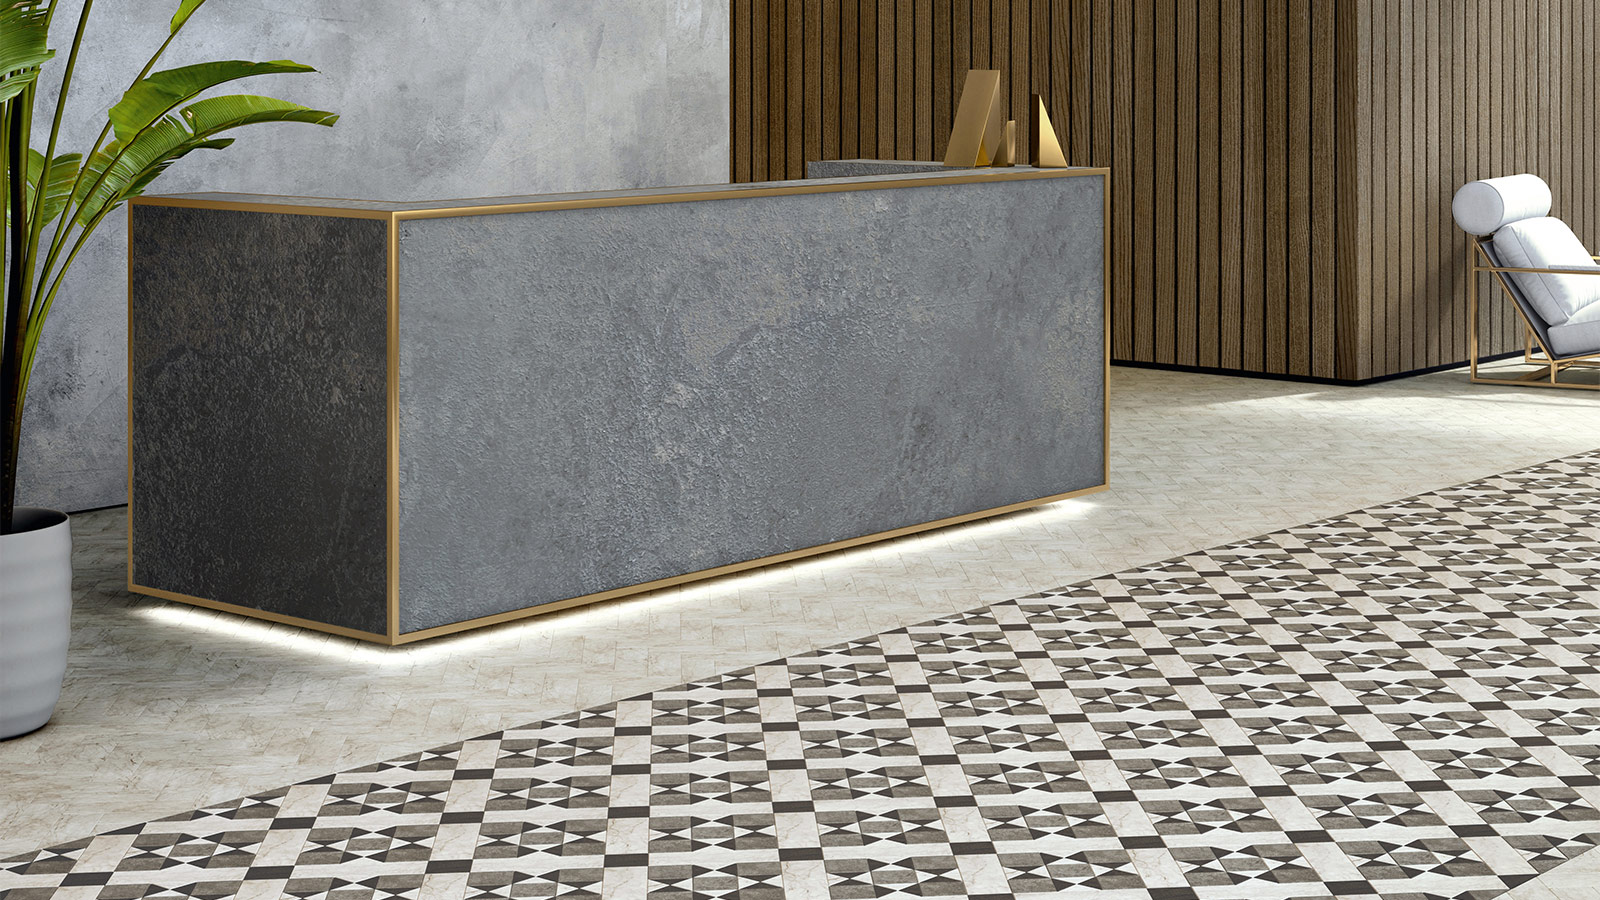 Amtico Commercial LVT Flooring: Flooring feature and fields